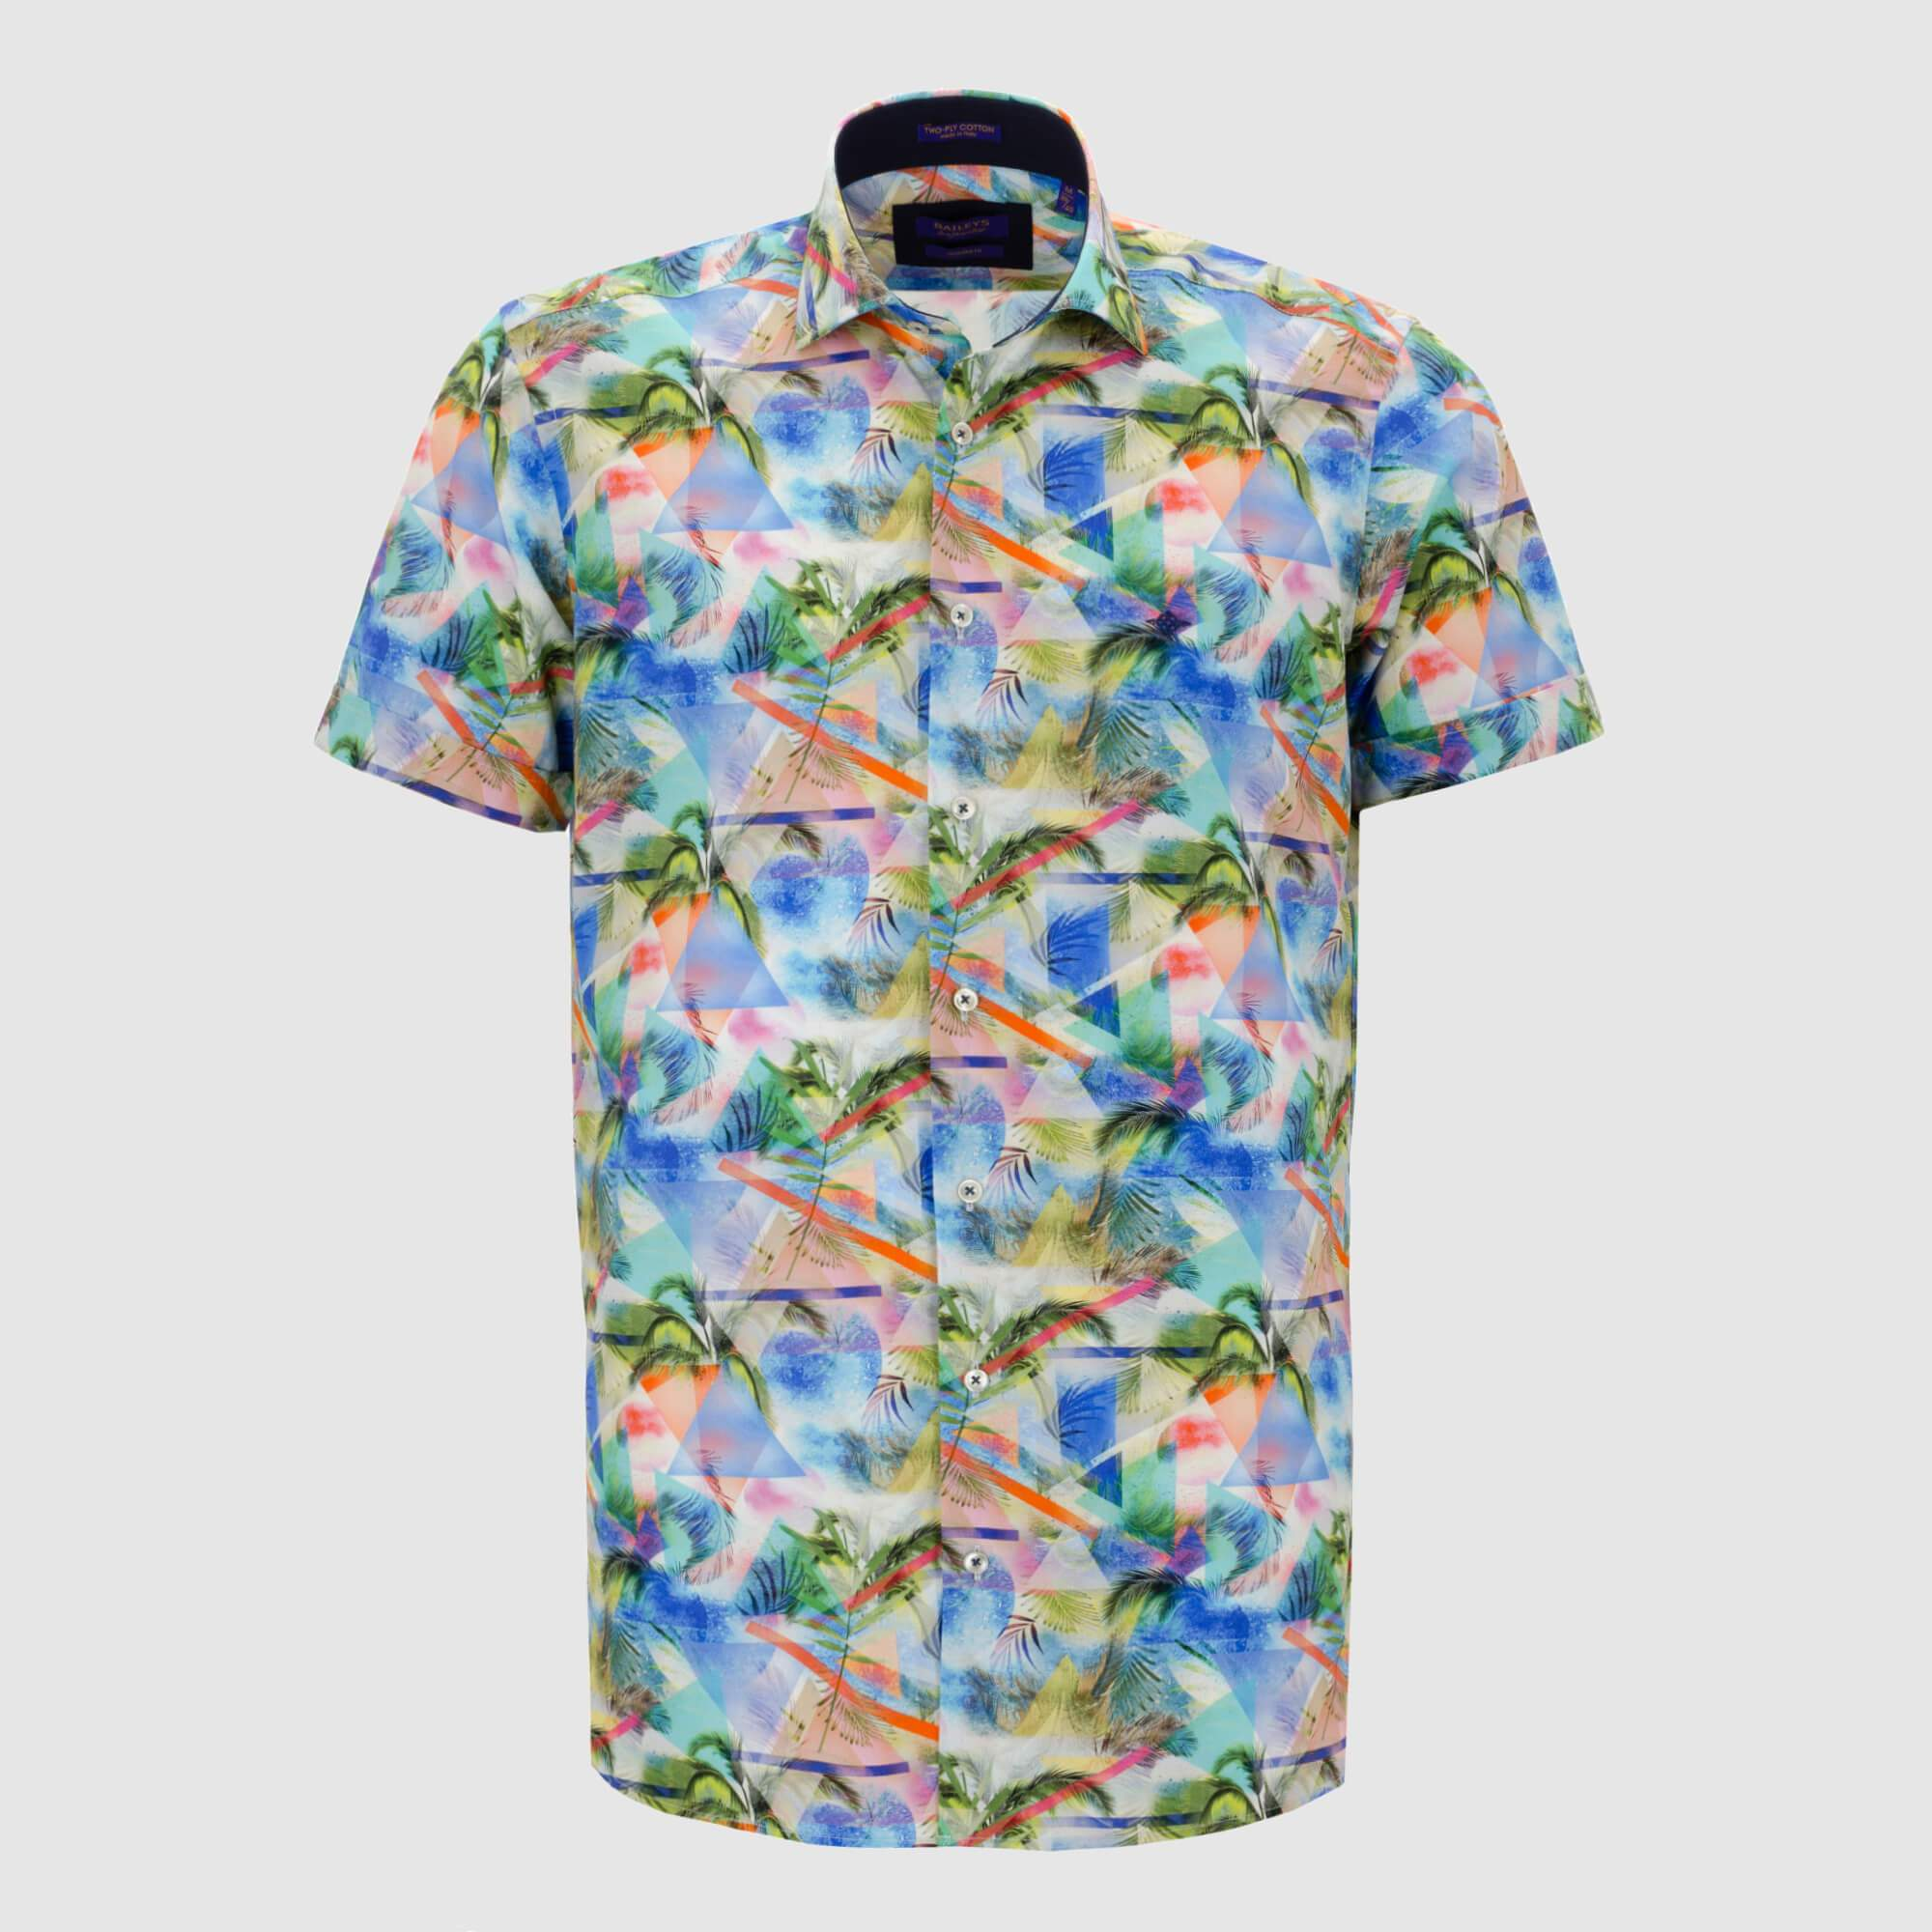 Camisa estampada diseño slim Fit 106806